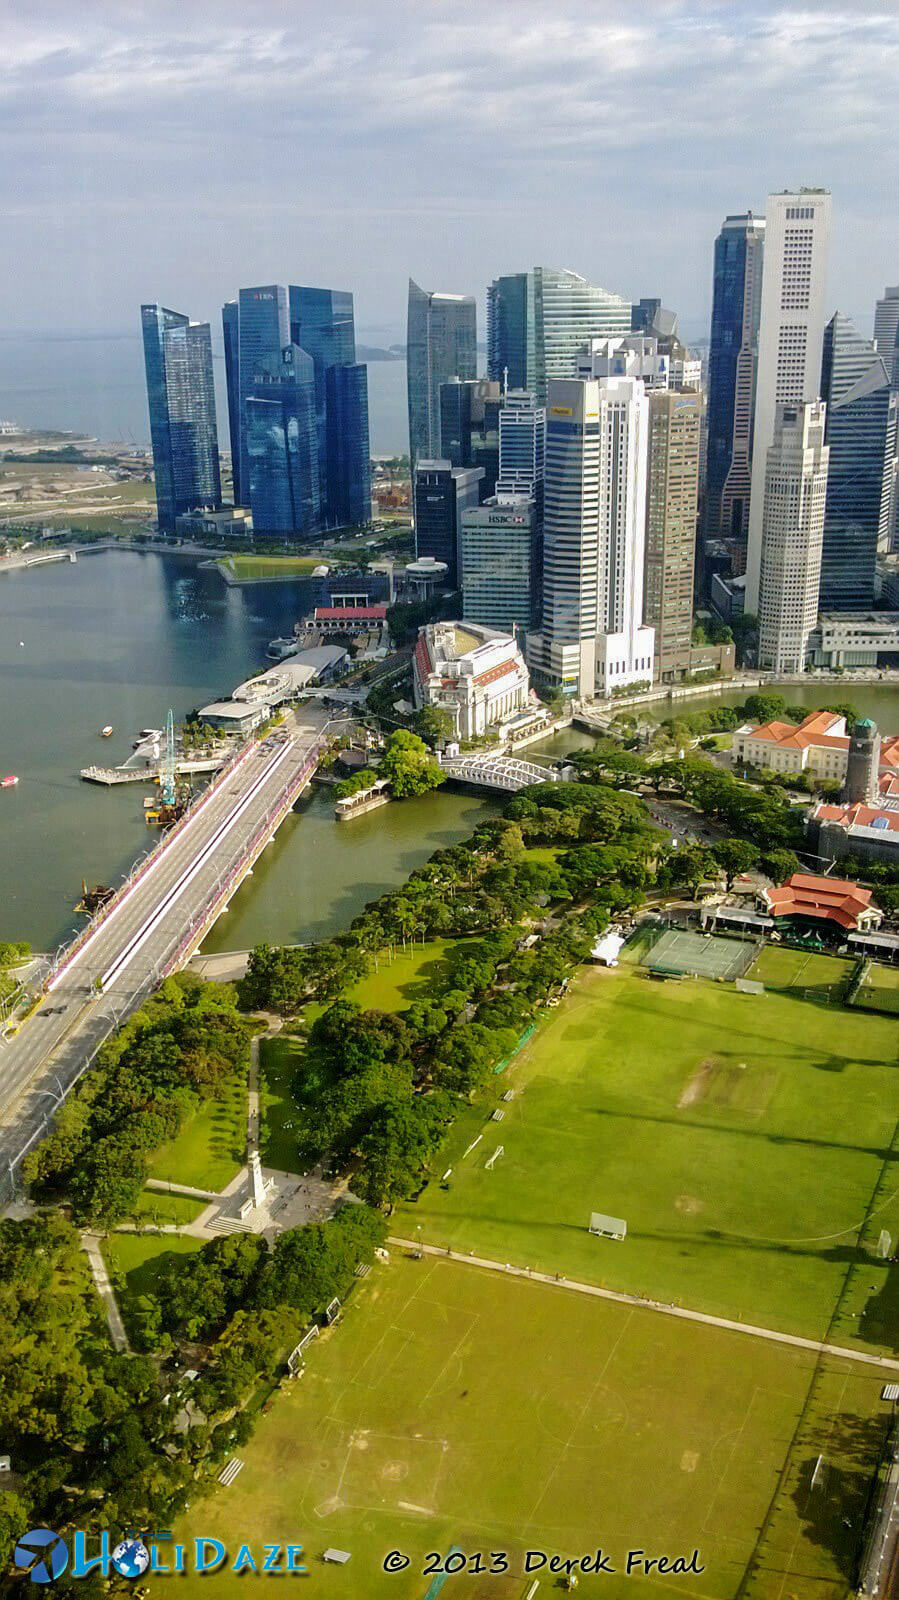 Downtown Singapore, as seen from the top of Swissotel Singapore